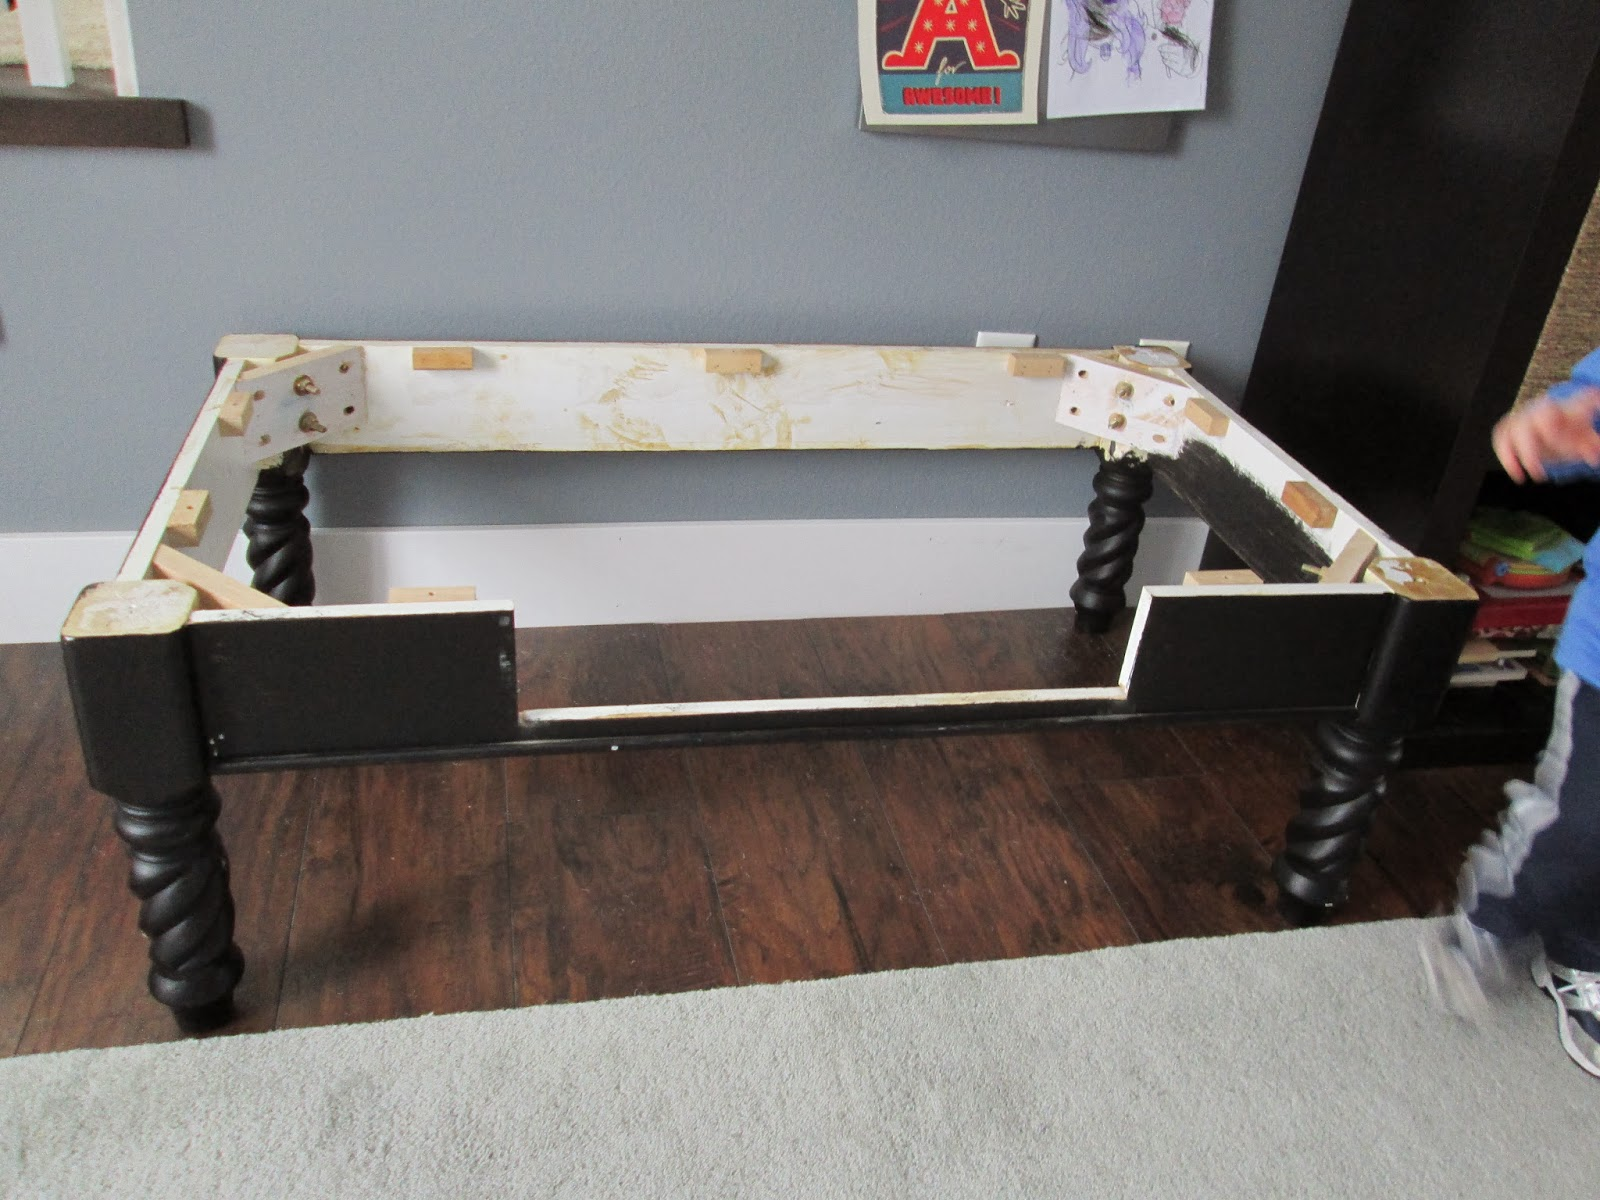 Thecomforts train table old coffee table i popped the top off and it will fit into the space perfectly geotapseo Choice Image